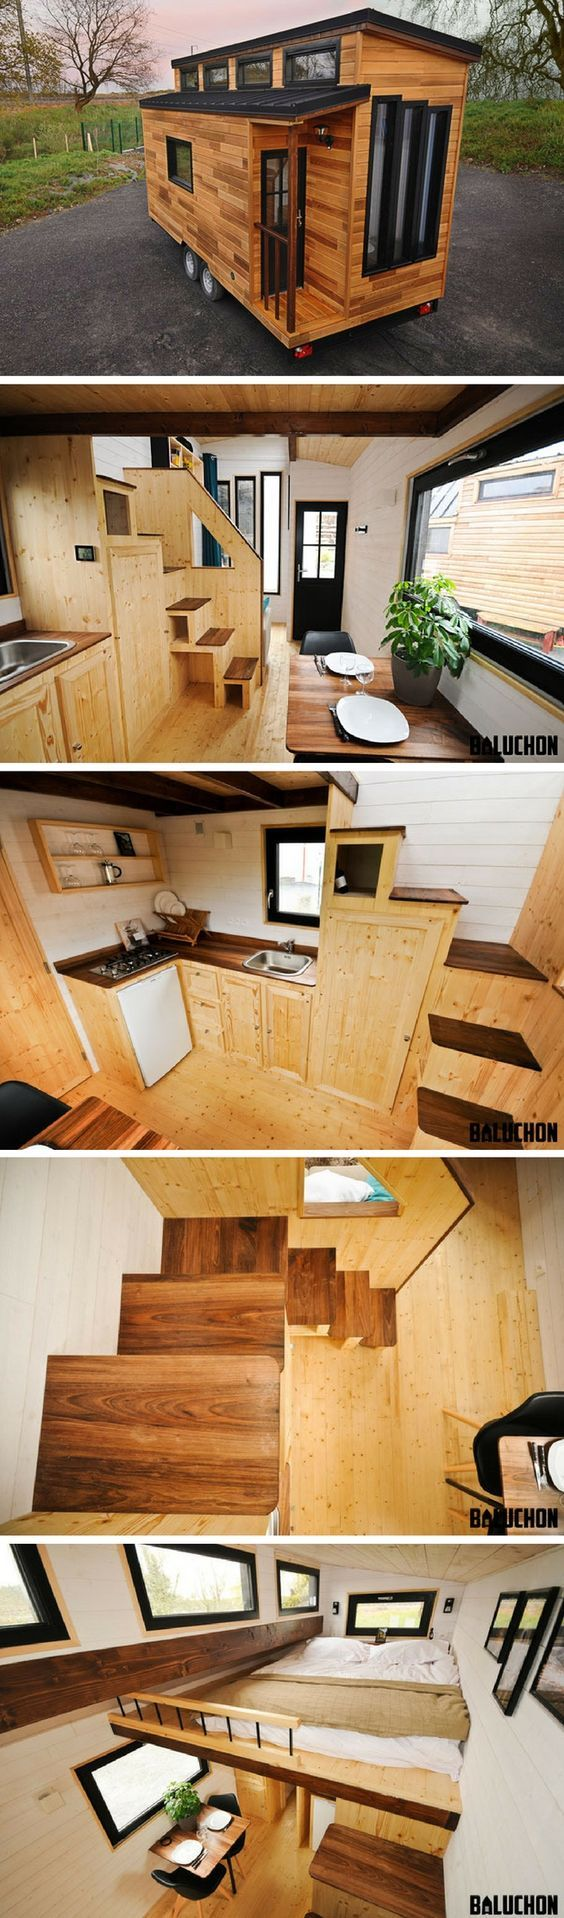 The Escapade: a beautiful, modern French tiny house: